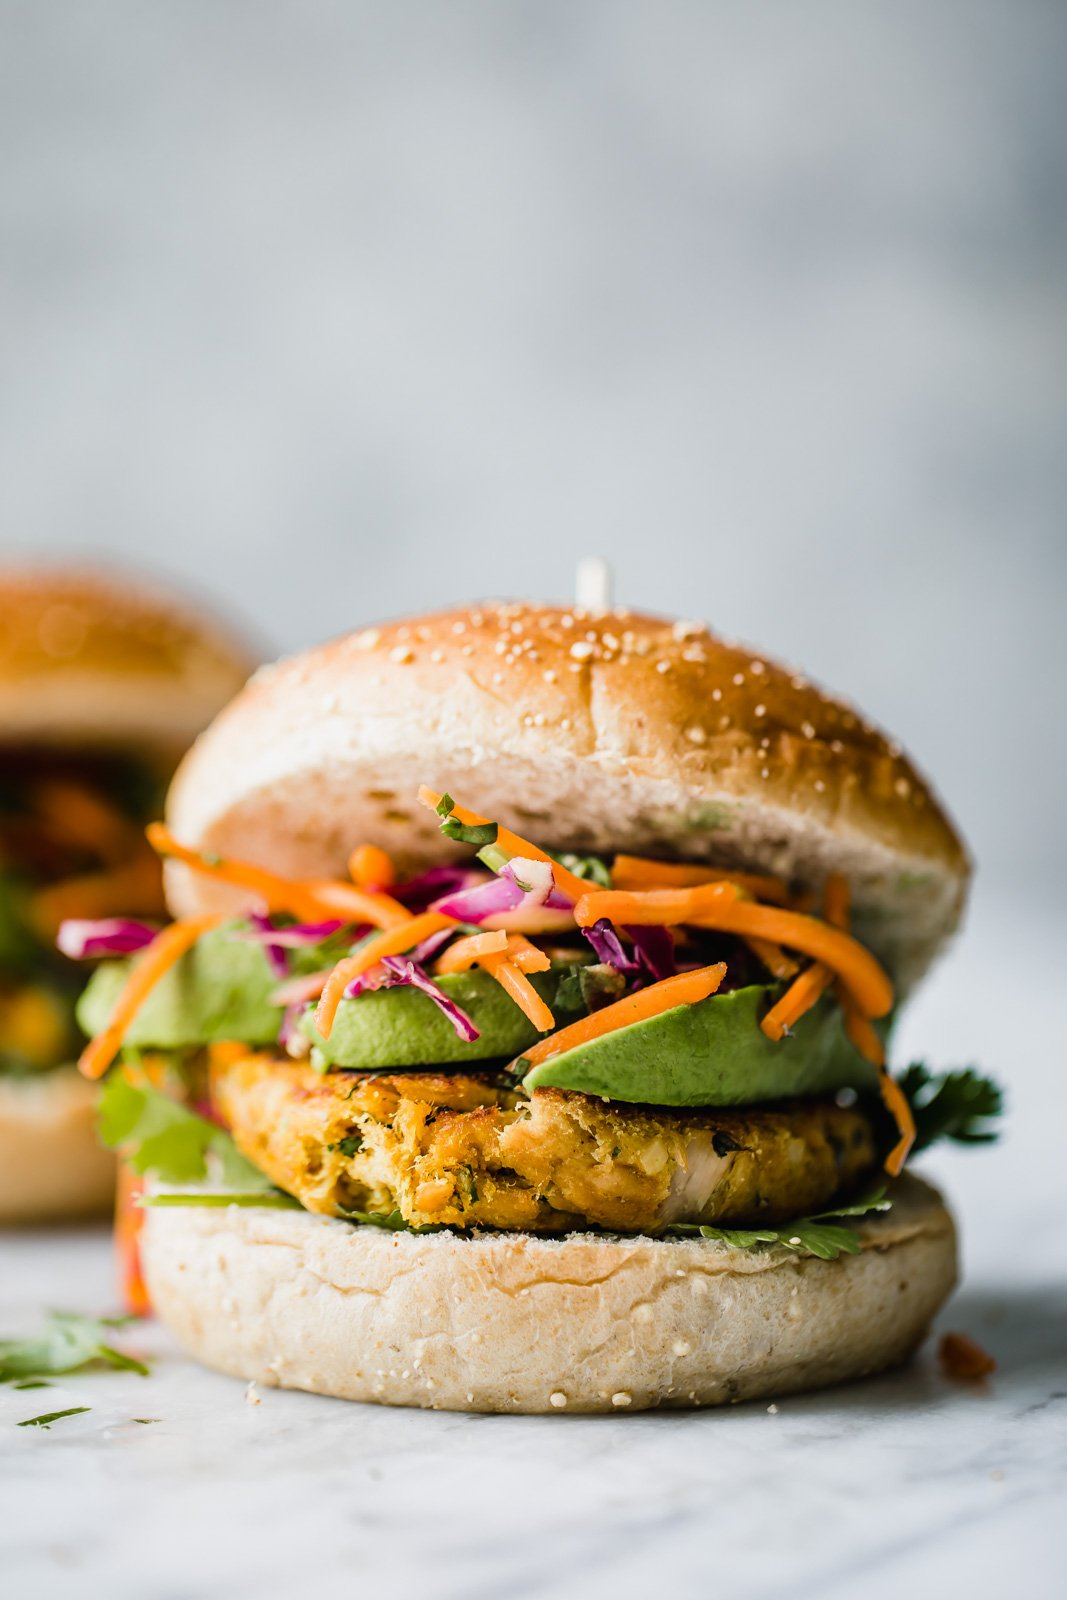 Tuna burger topped with avocado and cabbage slaw